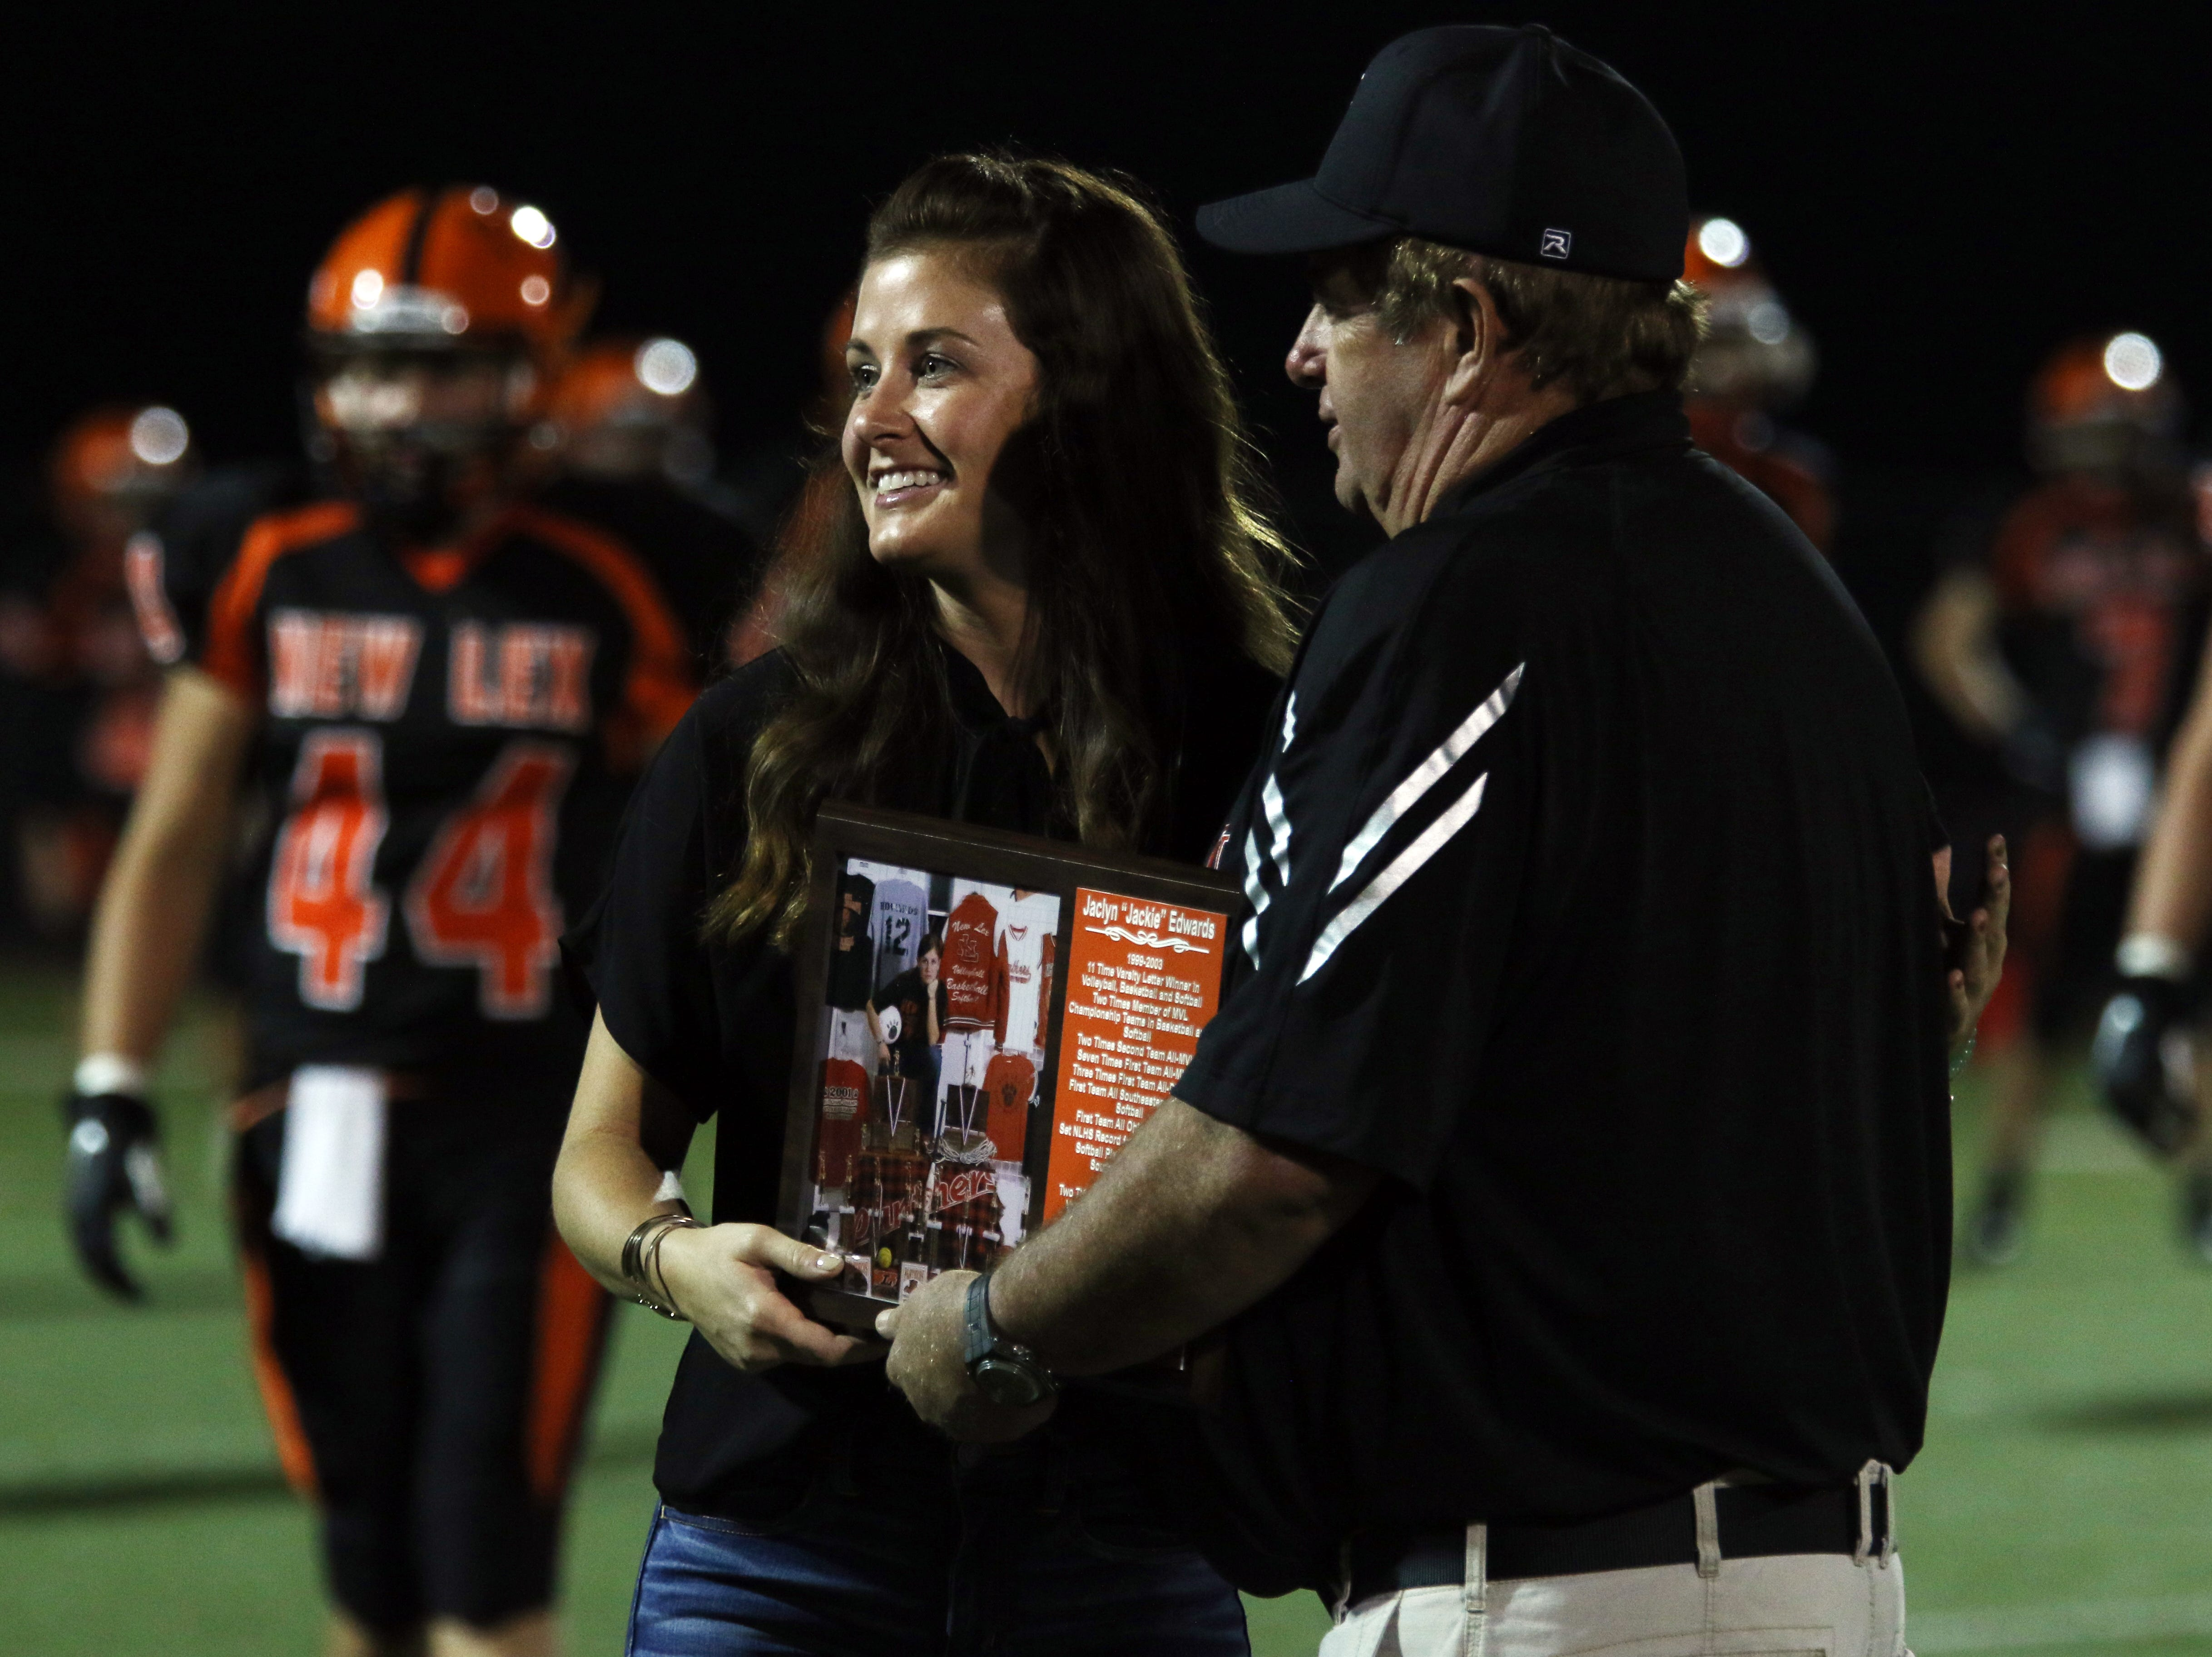 New Lexington's Jaclyn Edwards is inducted into the school's Hall of Fame Friday night.